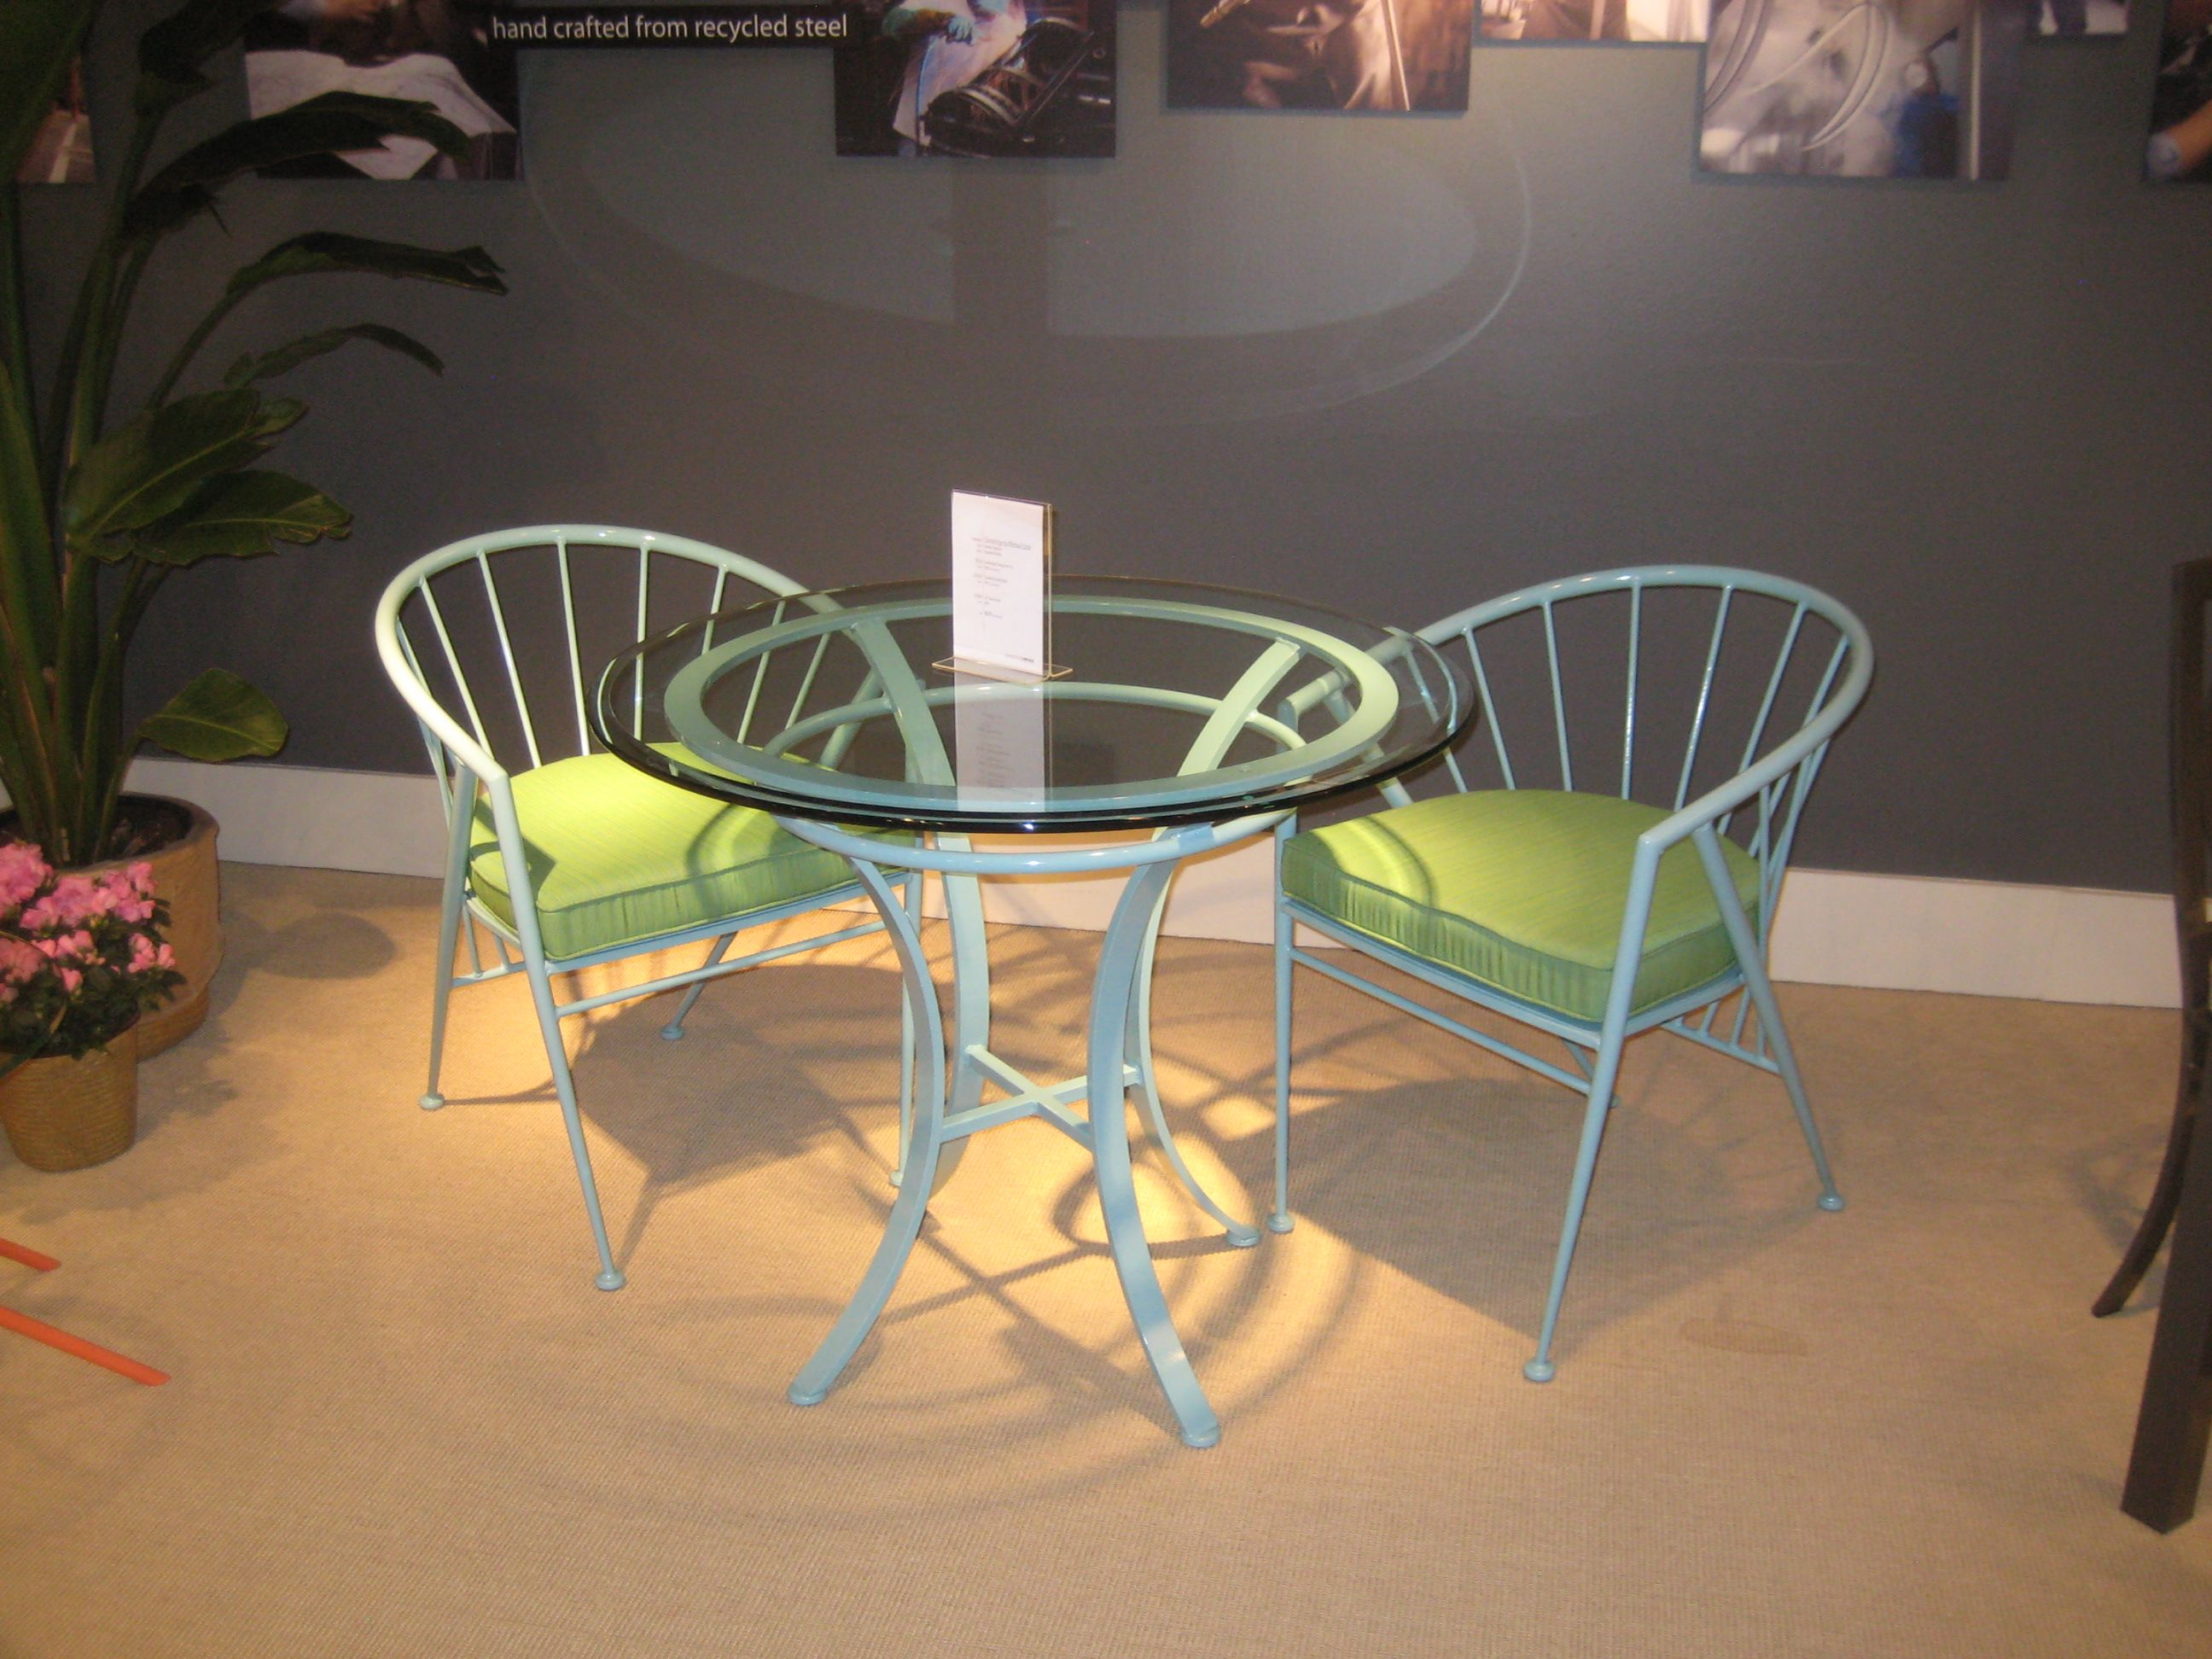 causal dining from johnston casuals  for the home  pinterest - causal dining from johnston casuals